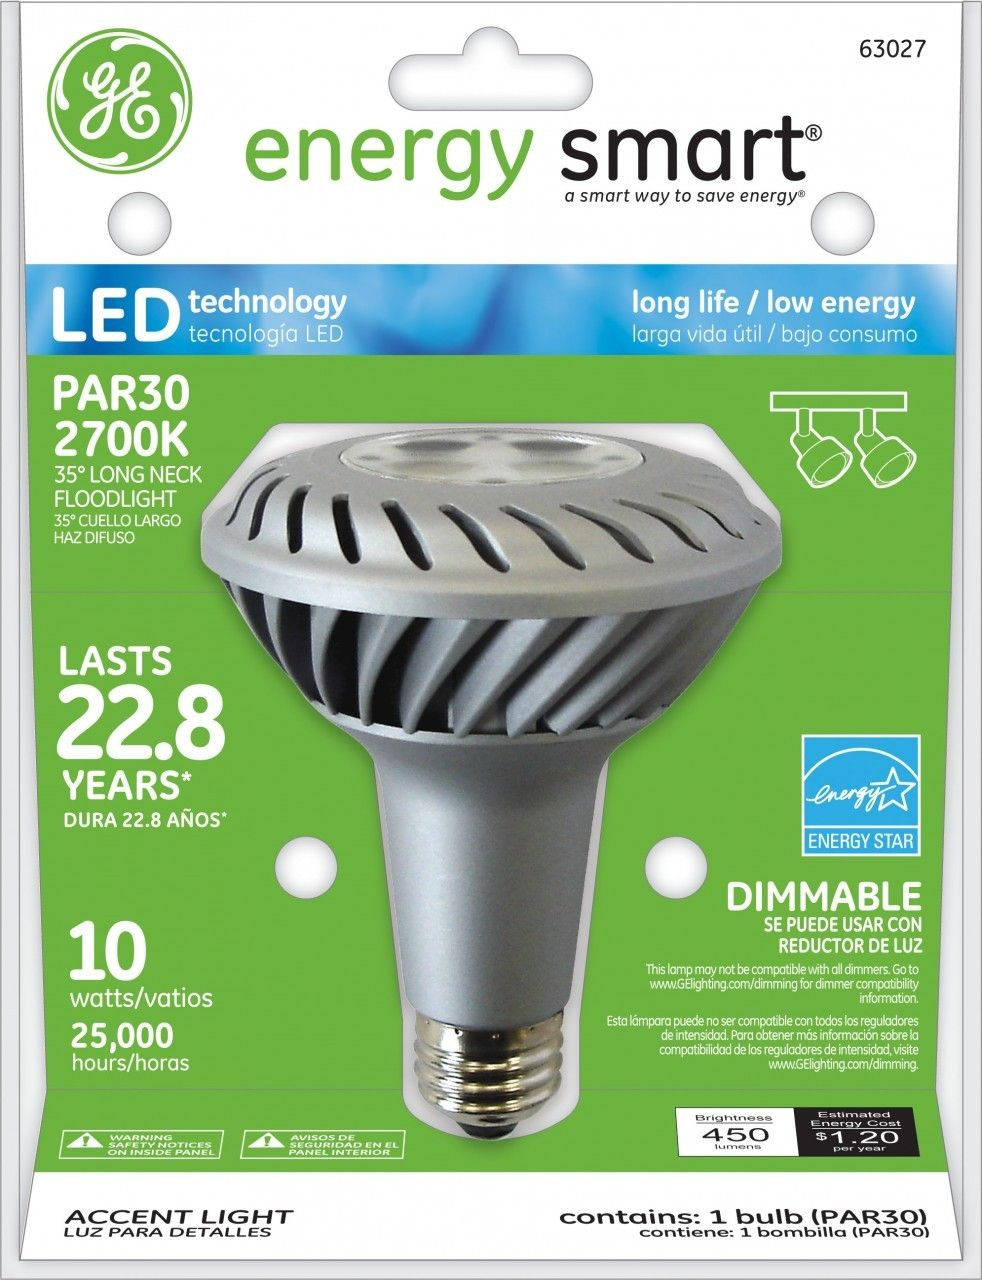 Green Supply For Now And Future Ge Energy Smart 45w Replacement 10w Par30l Led Bulb Warm Dim Energy Star Led Light Bulb Led Bathroom Lights Led Lights